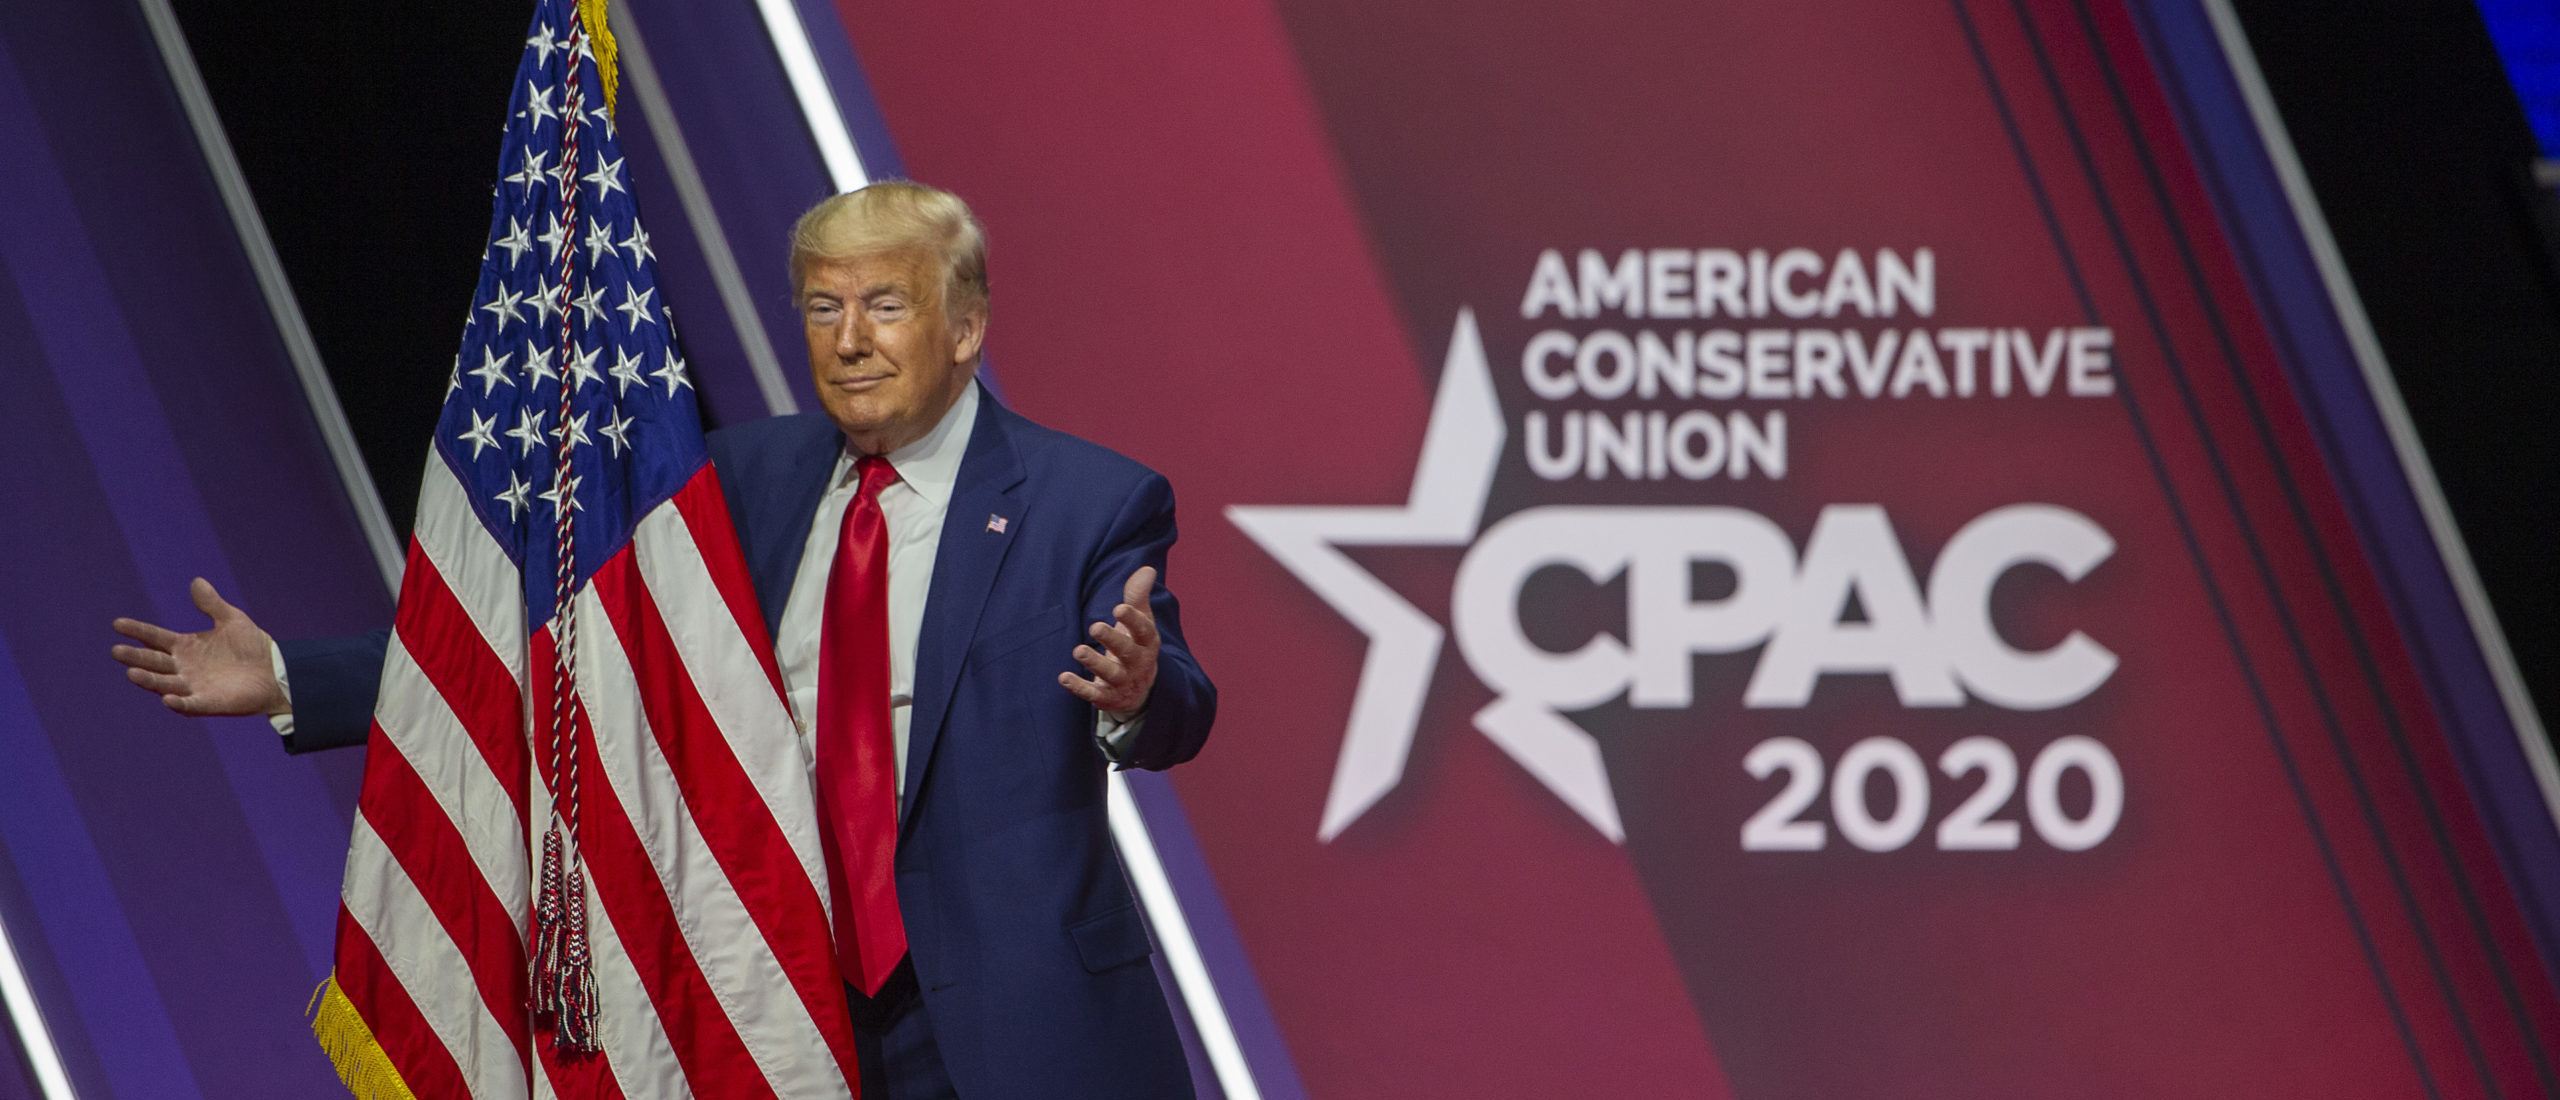 President Donald Trump hugs the flag of the United States of America at the annual Conservative Political Action Conference (CPAC). (Photo by Tasos Katopodis/Getty Images)